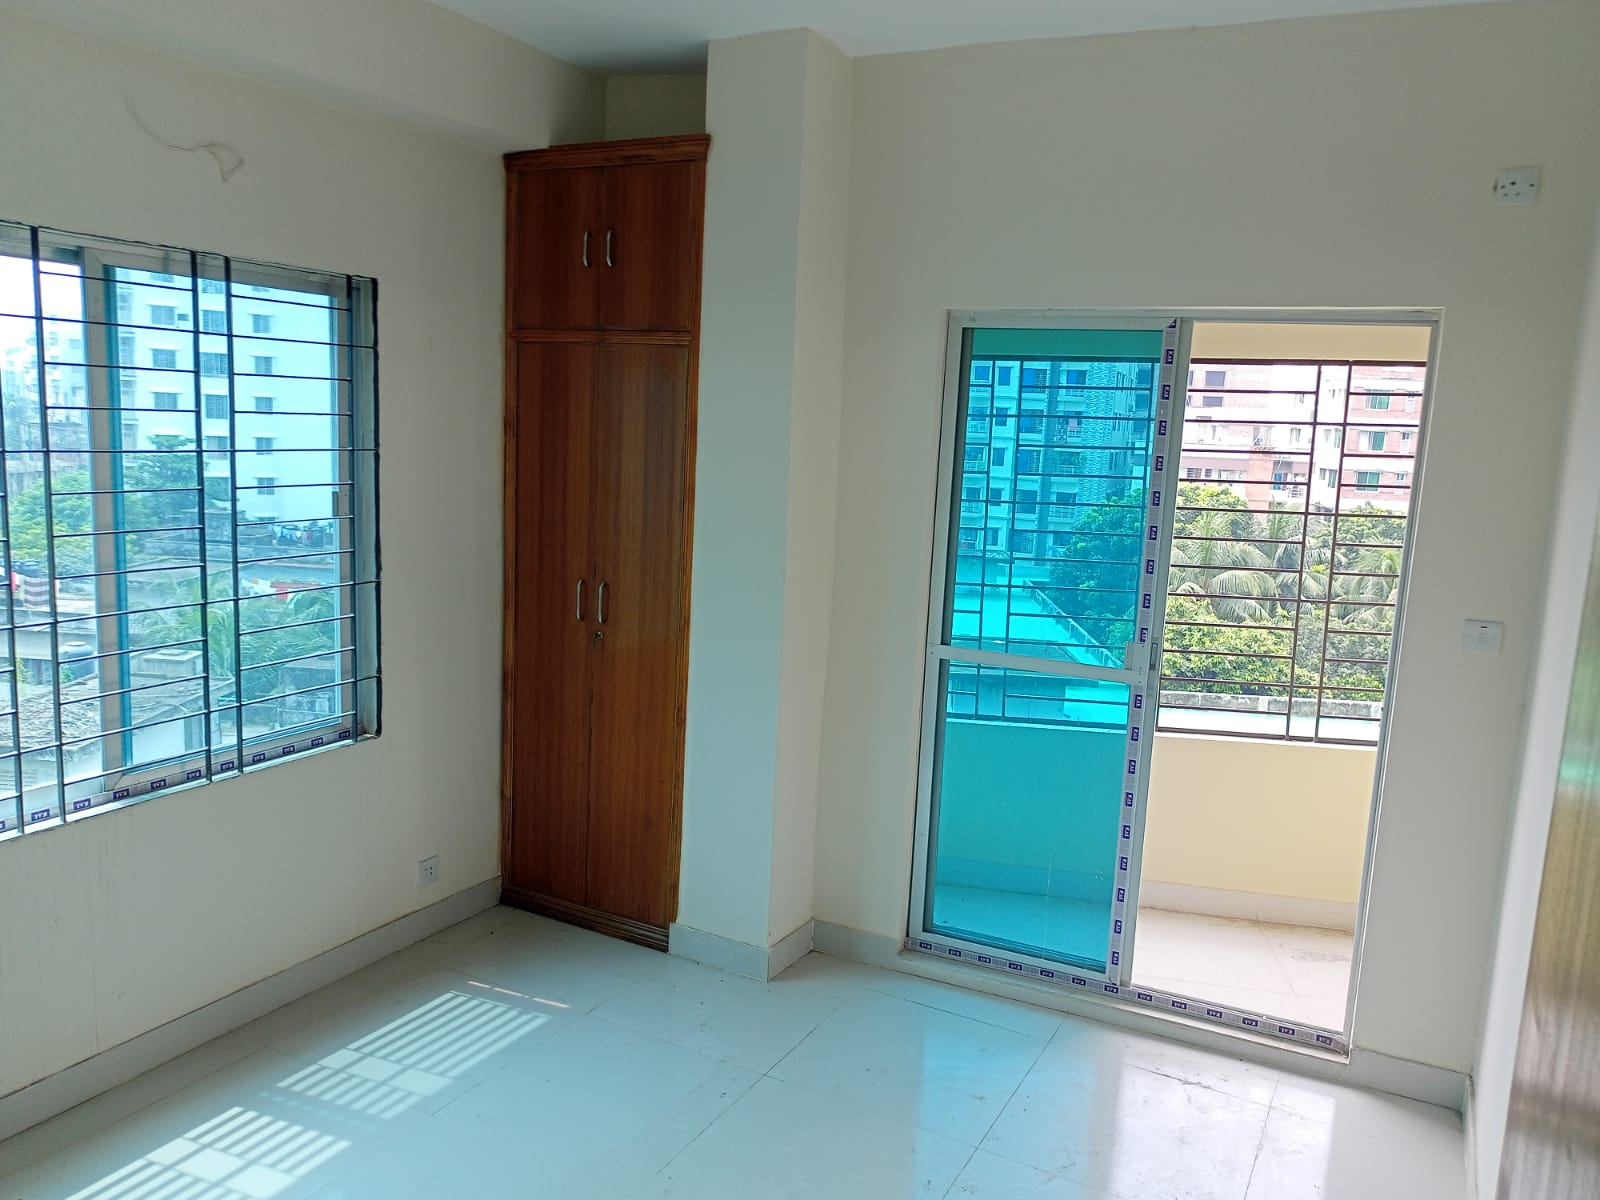 1060-sft-apartment-for-sale-at-jafrabad-dhanmondi-6th-floor-186867